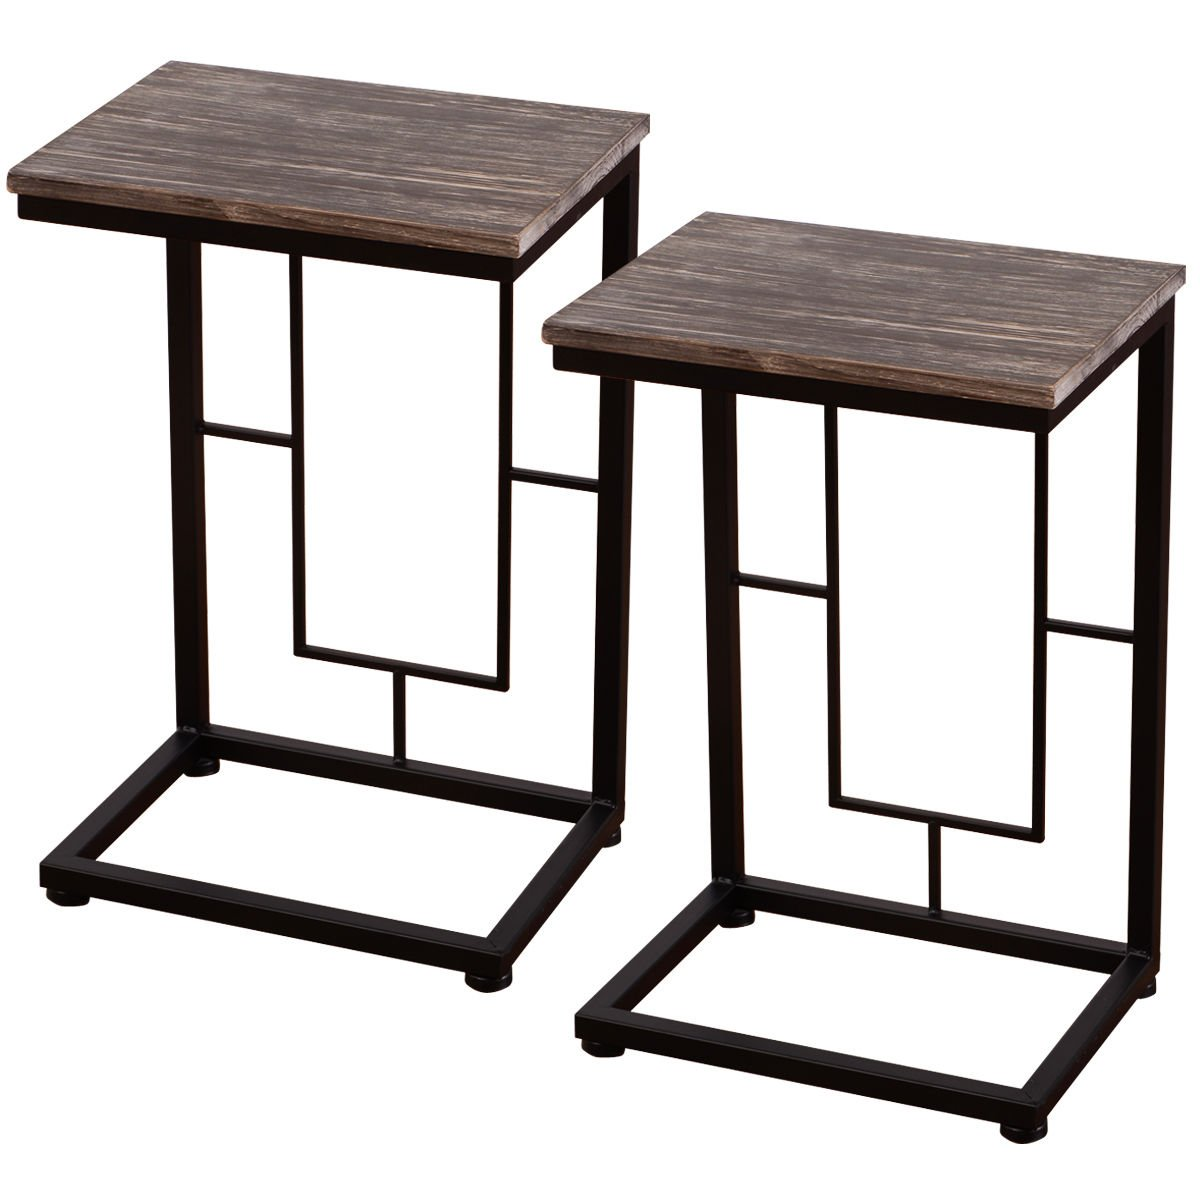 New MTN-G 2PCS 21.7'' Wood Coffee Tray Side Sofa End Table Couch Stand Lap Antique Finish